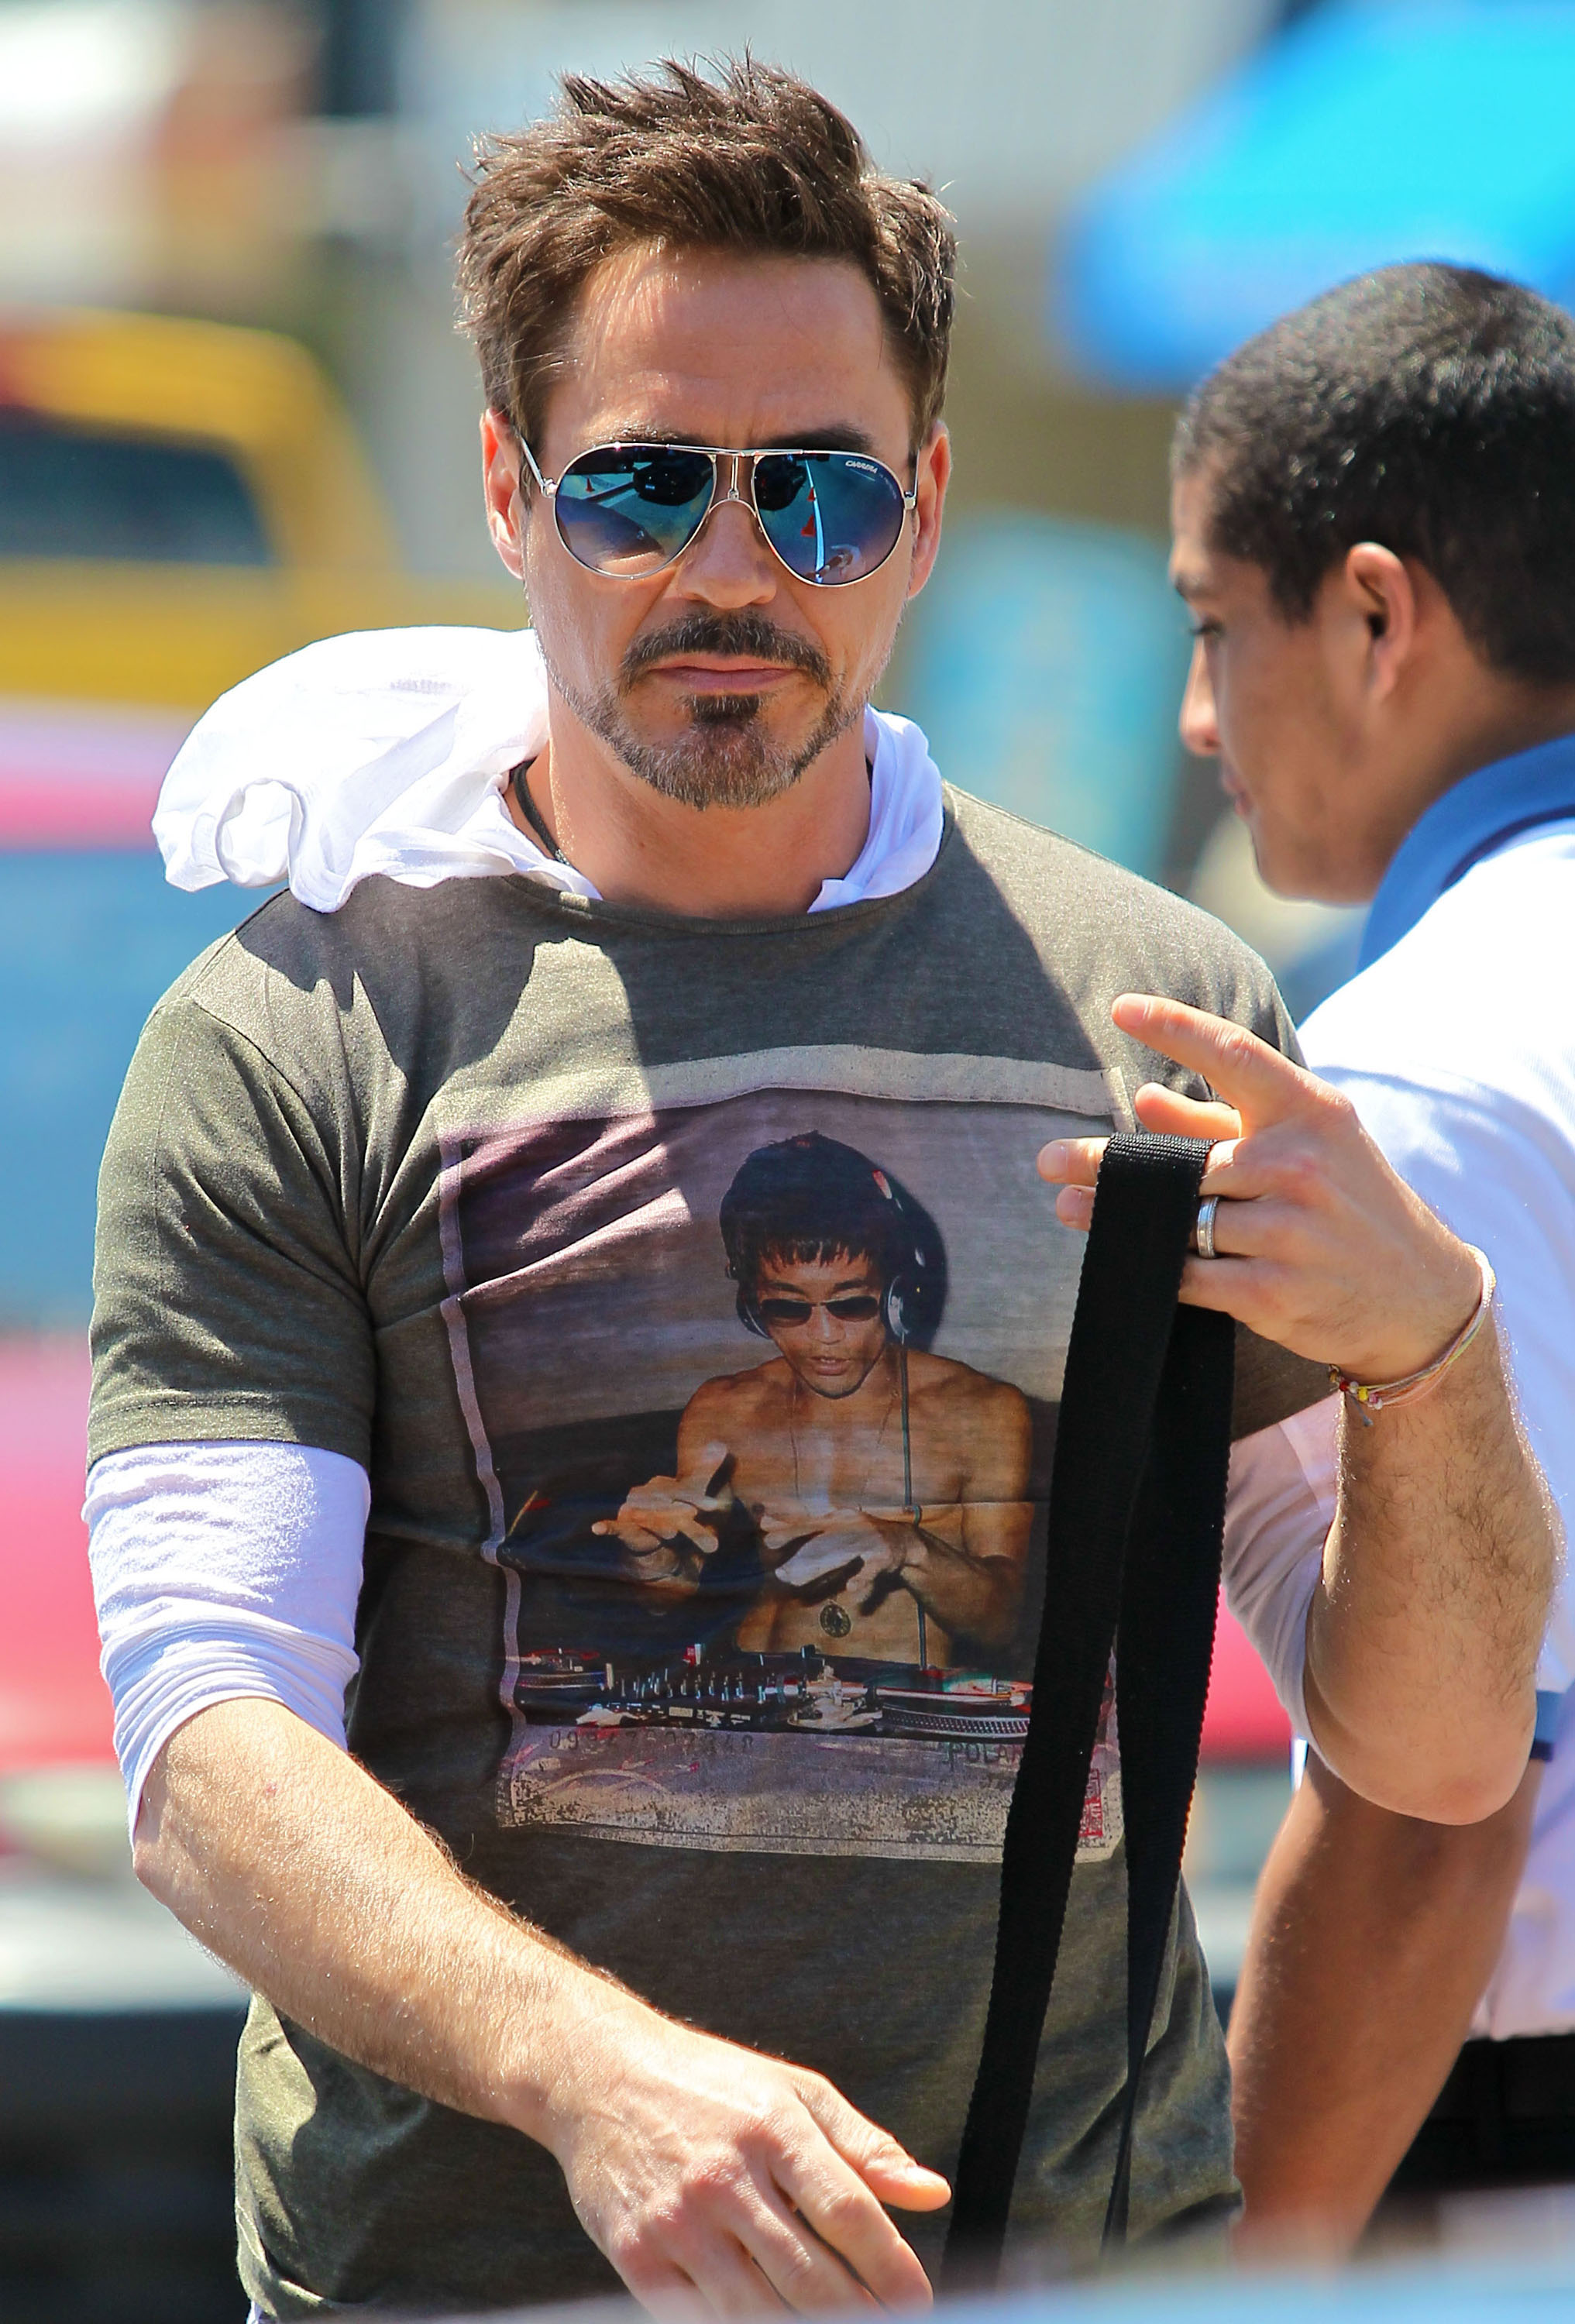 Robert Downey Jr. wore shades to Joel Silver's Memorial Day party in LA.